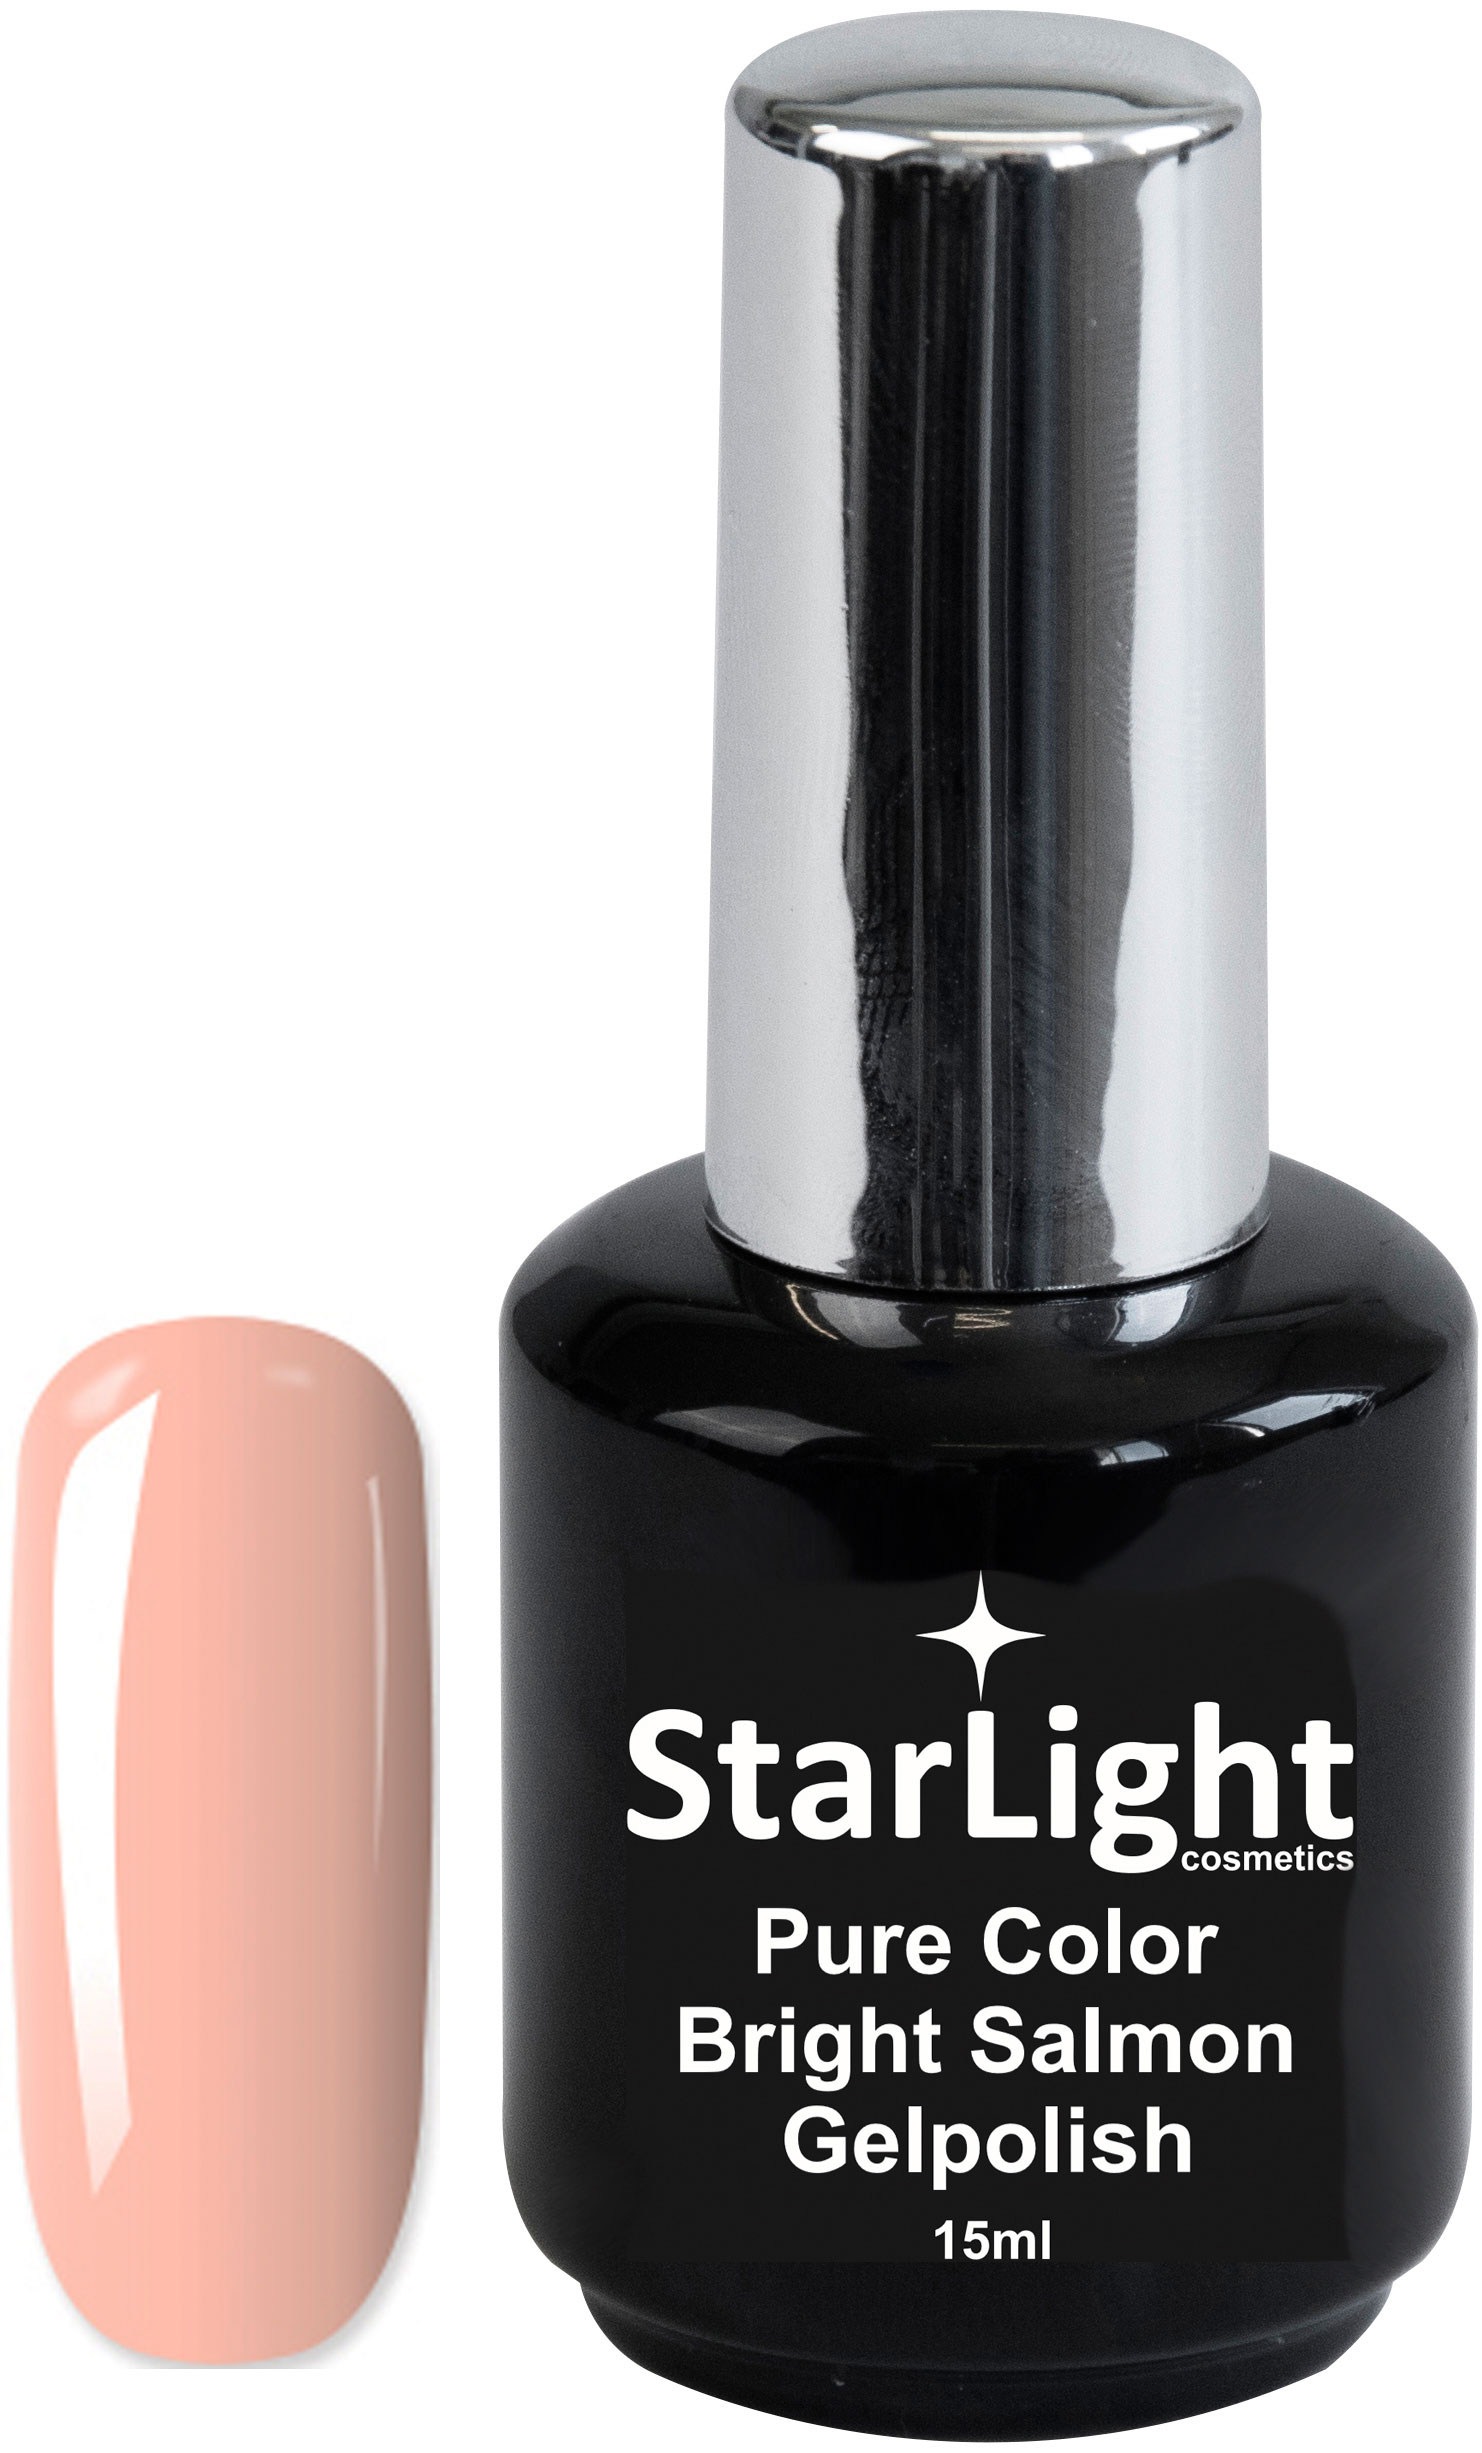 Naglar Gelpolish Pure Color Bright Salmon - 15 ml